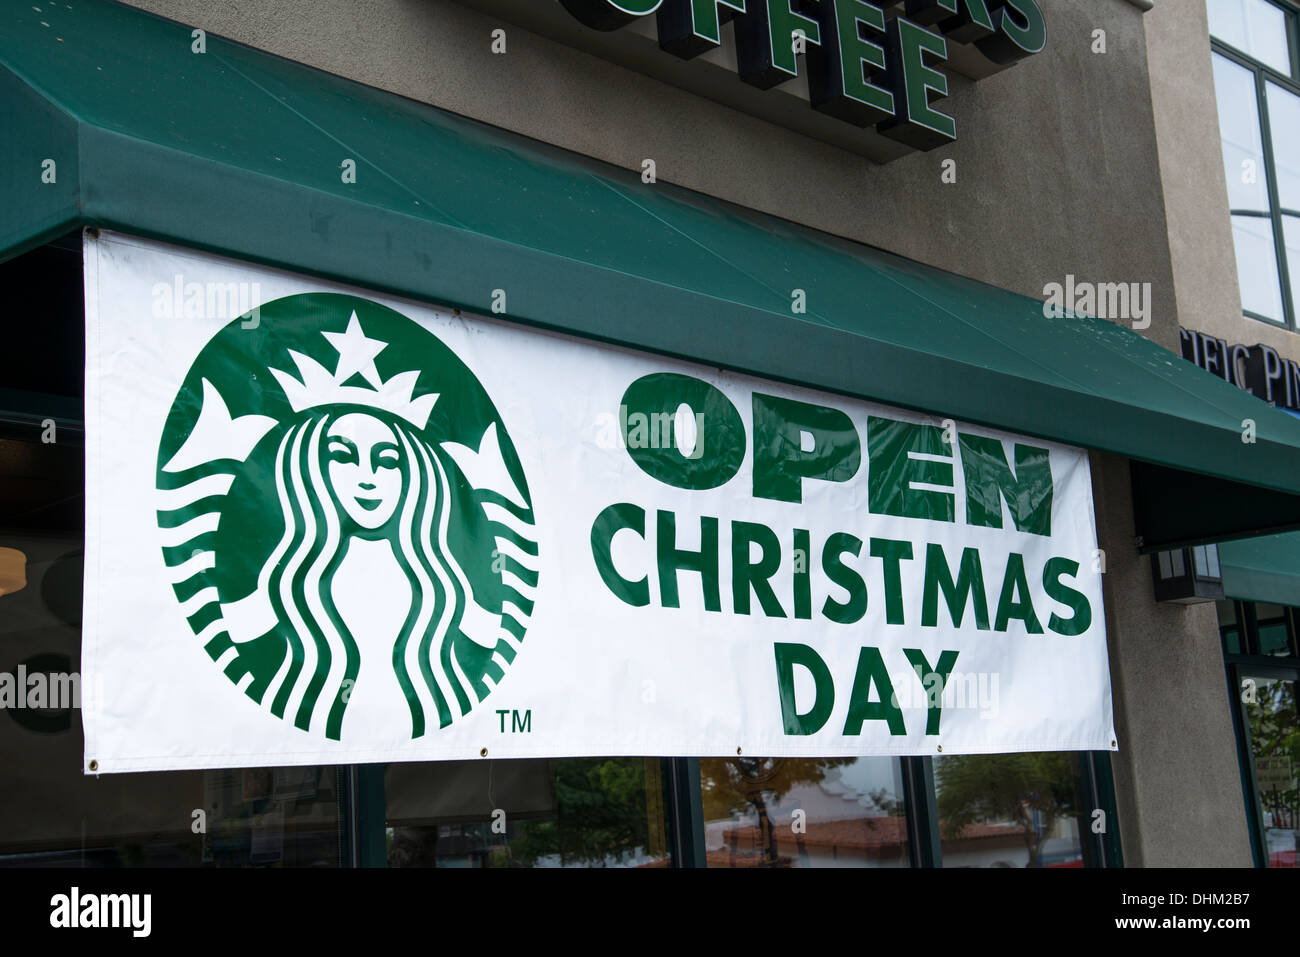 open christmas day sign in front of starbucks 784 west washington street san diego